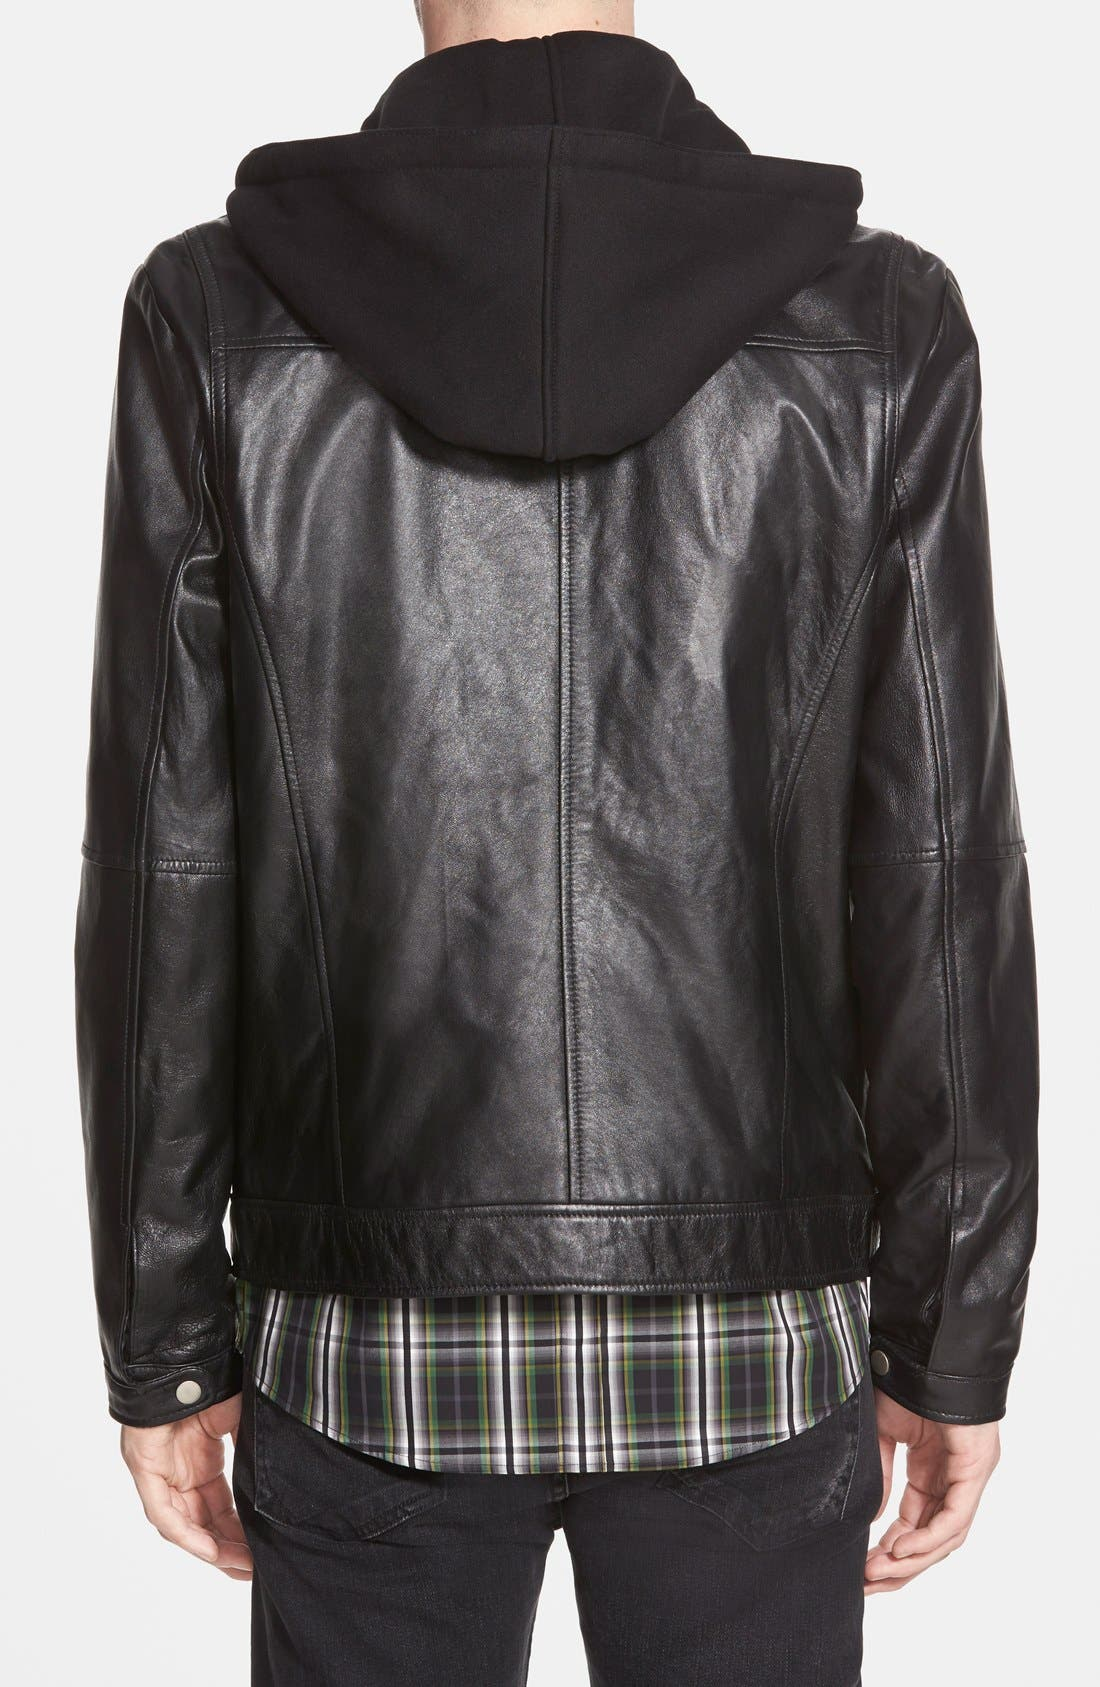 7 DIAMONDS,                             'Los Angeles' Trim Fit Leather Moto Jacket with Inset Hood,                             Alternate thumbnail 3, color,                             001